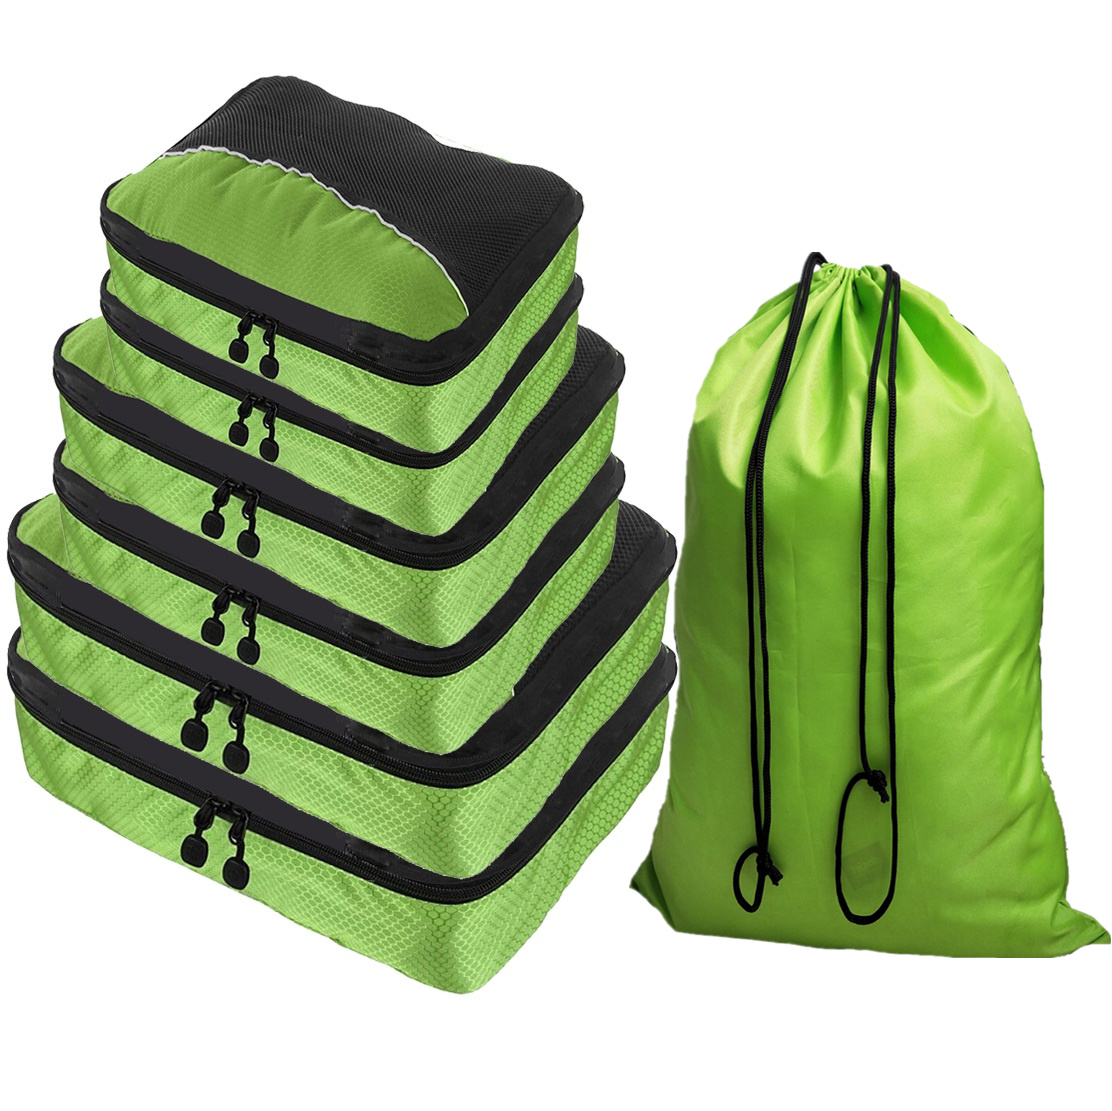 Double Zipper 6 Piece Packing Cubes Travel Organizer with Laundry Bag